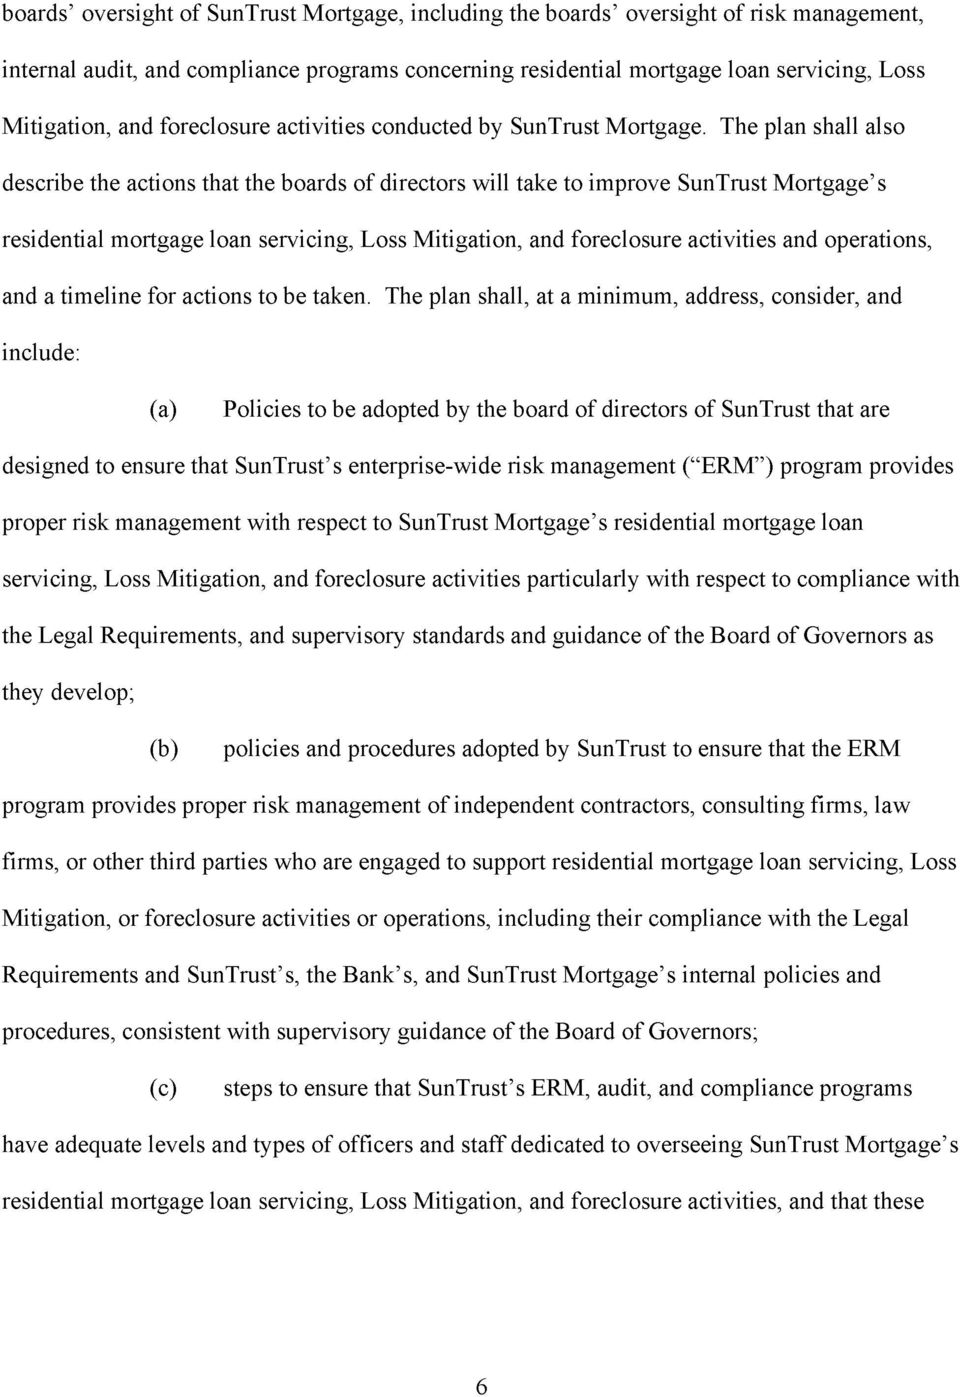 The plan shall also describe the actions that the boards of directors will take to improve SunTrust Mortgage's residential mortgage loan servicing, Loss Mitigation, and foreclosure activities and